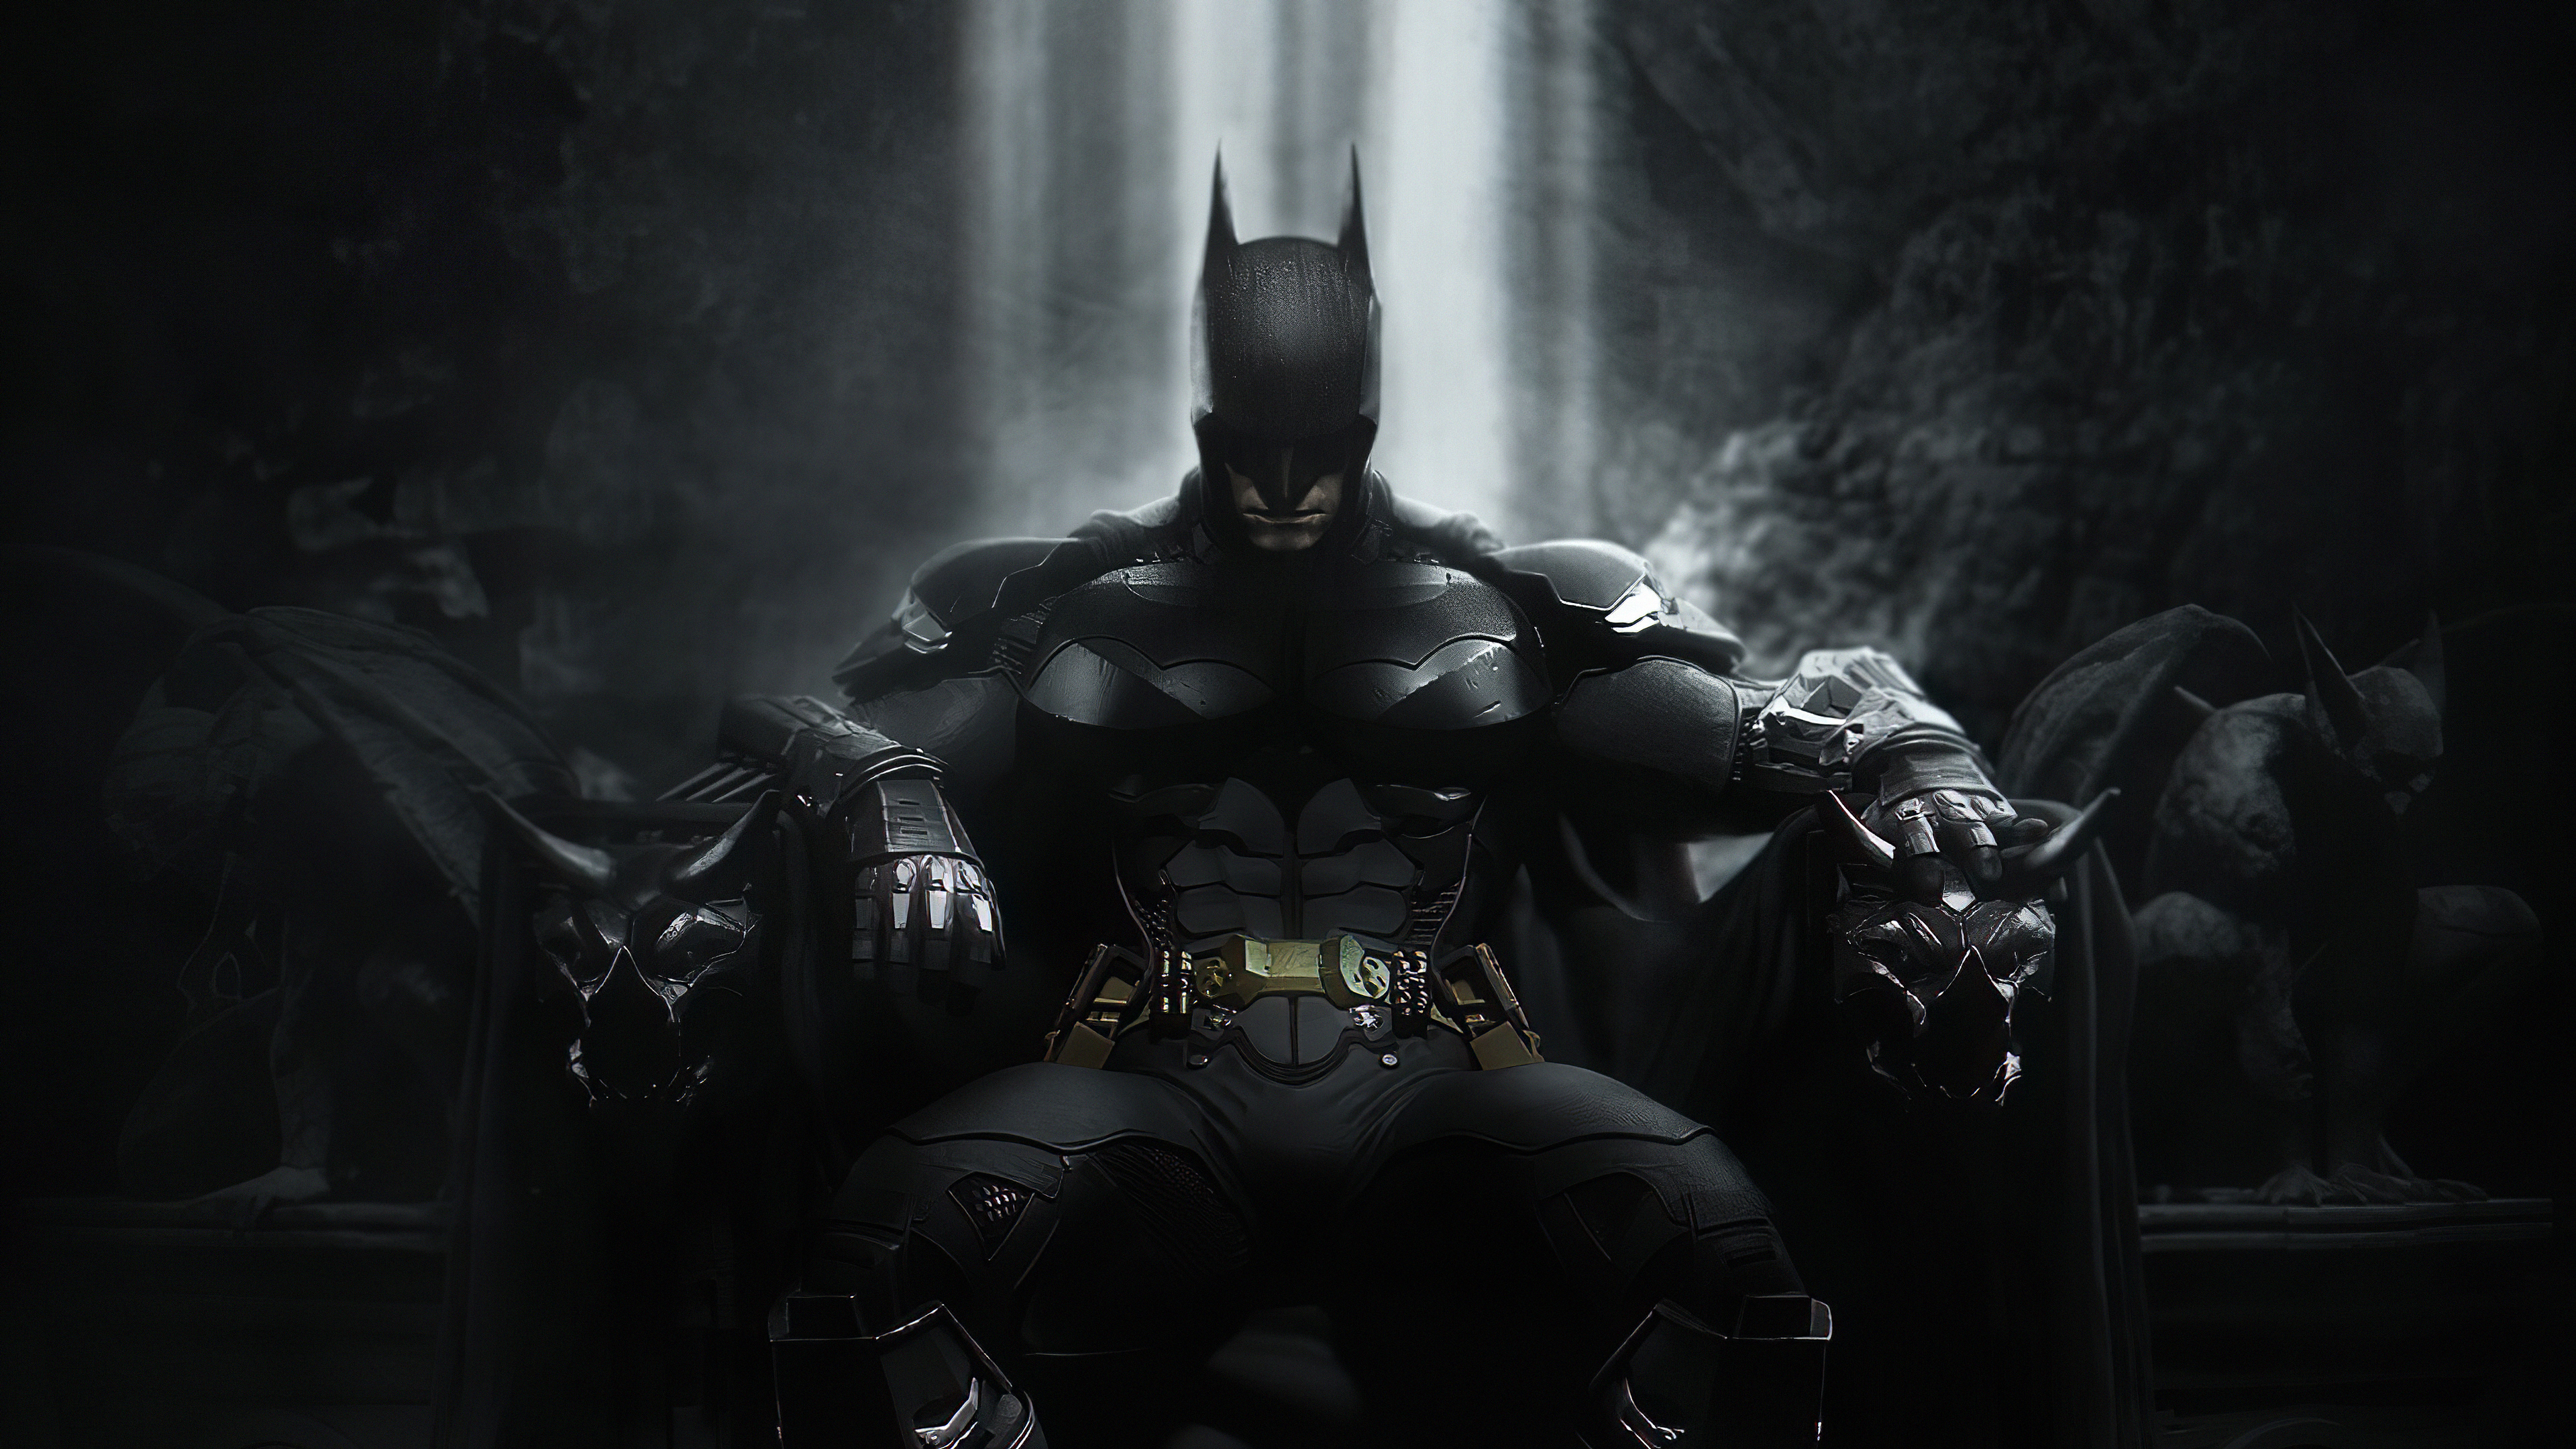 Batman Throne 4k Hd Superheroes 4k Wallpapers Images Backgrounds Photos And Pictures